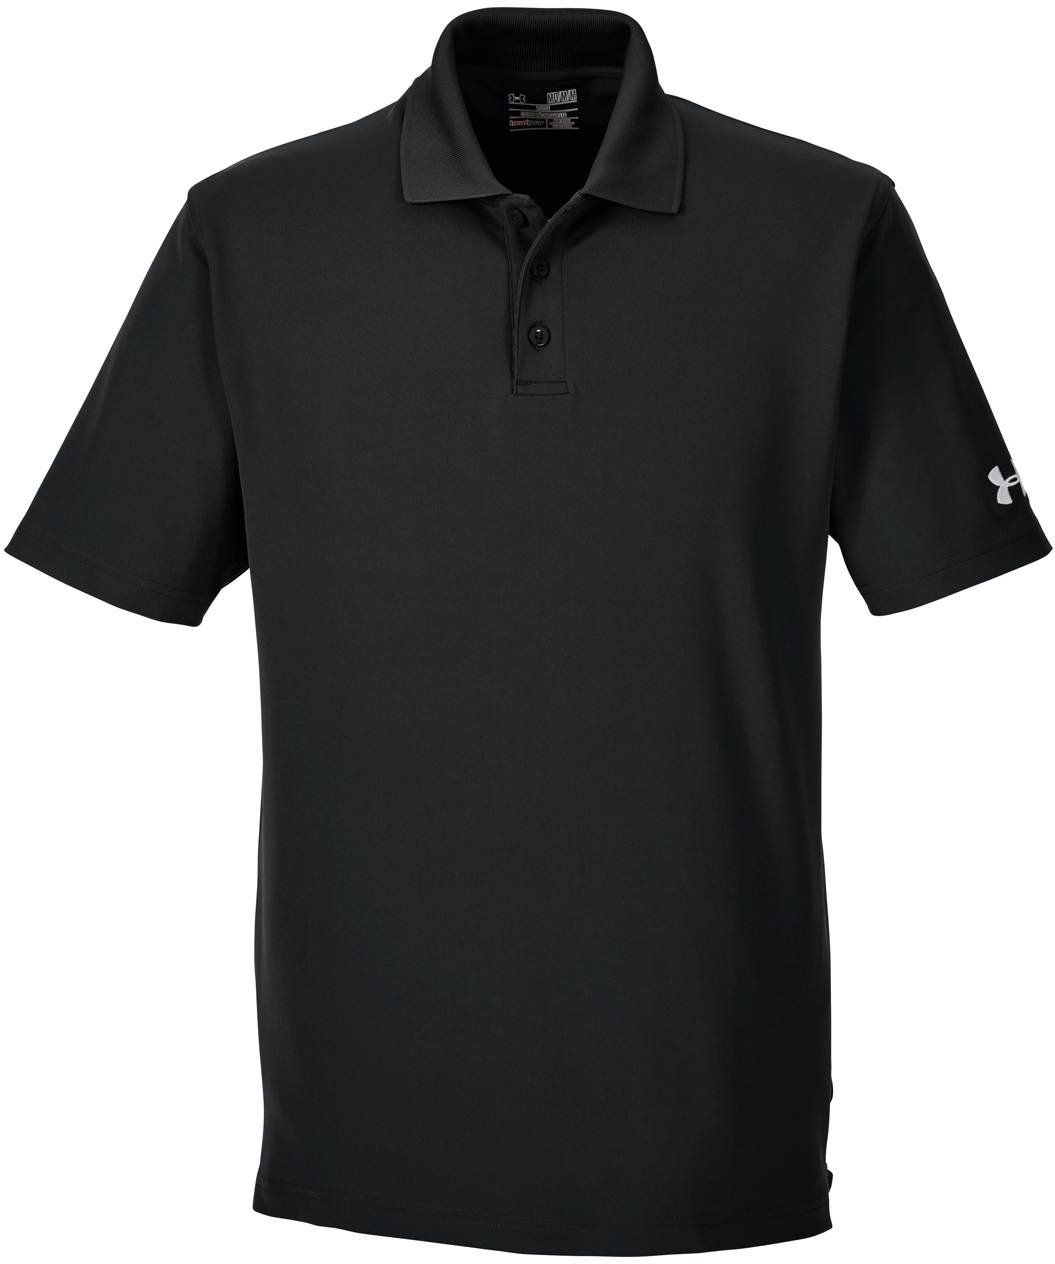 Under armour men 39 s corporate performance polo for Under armor business shirts